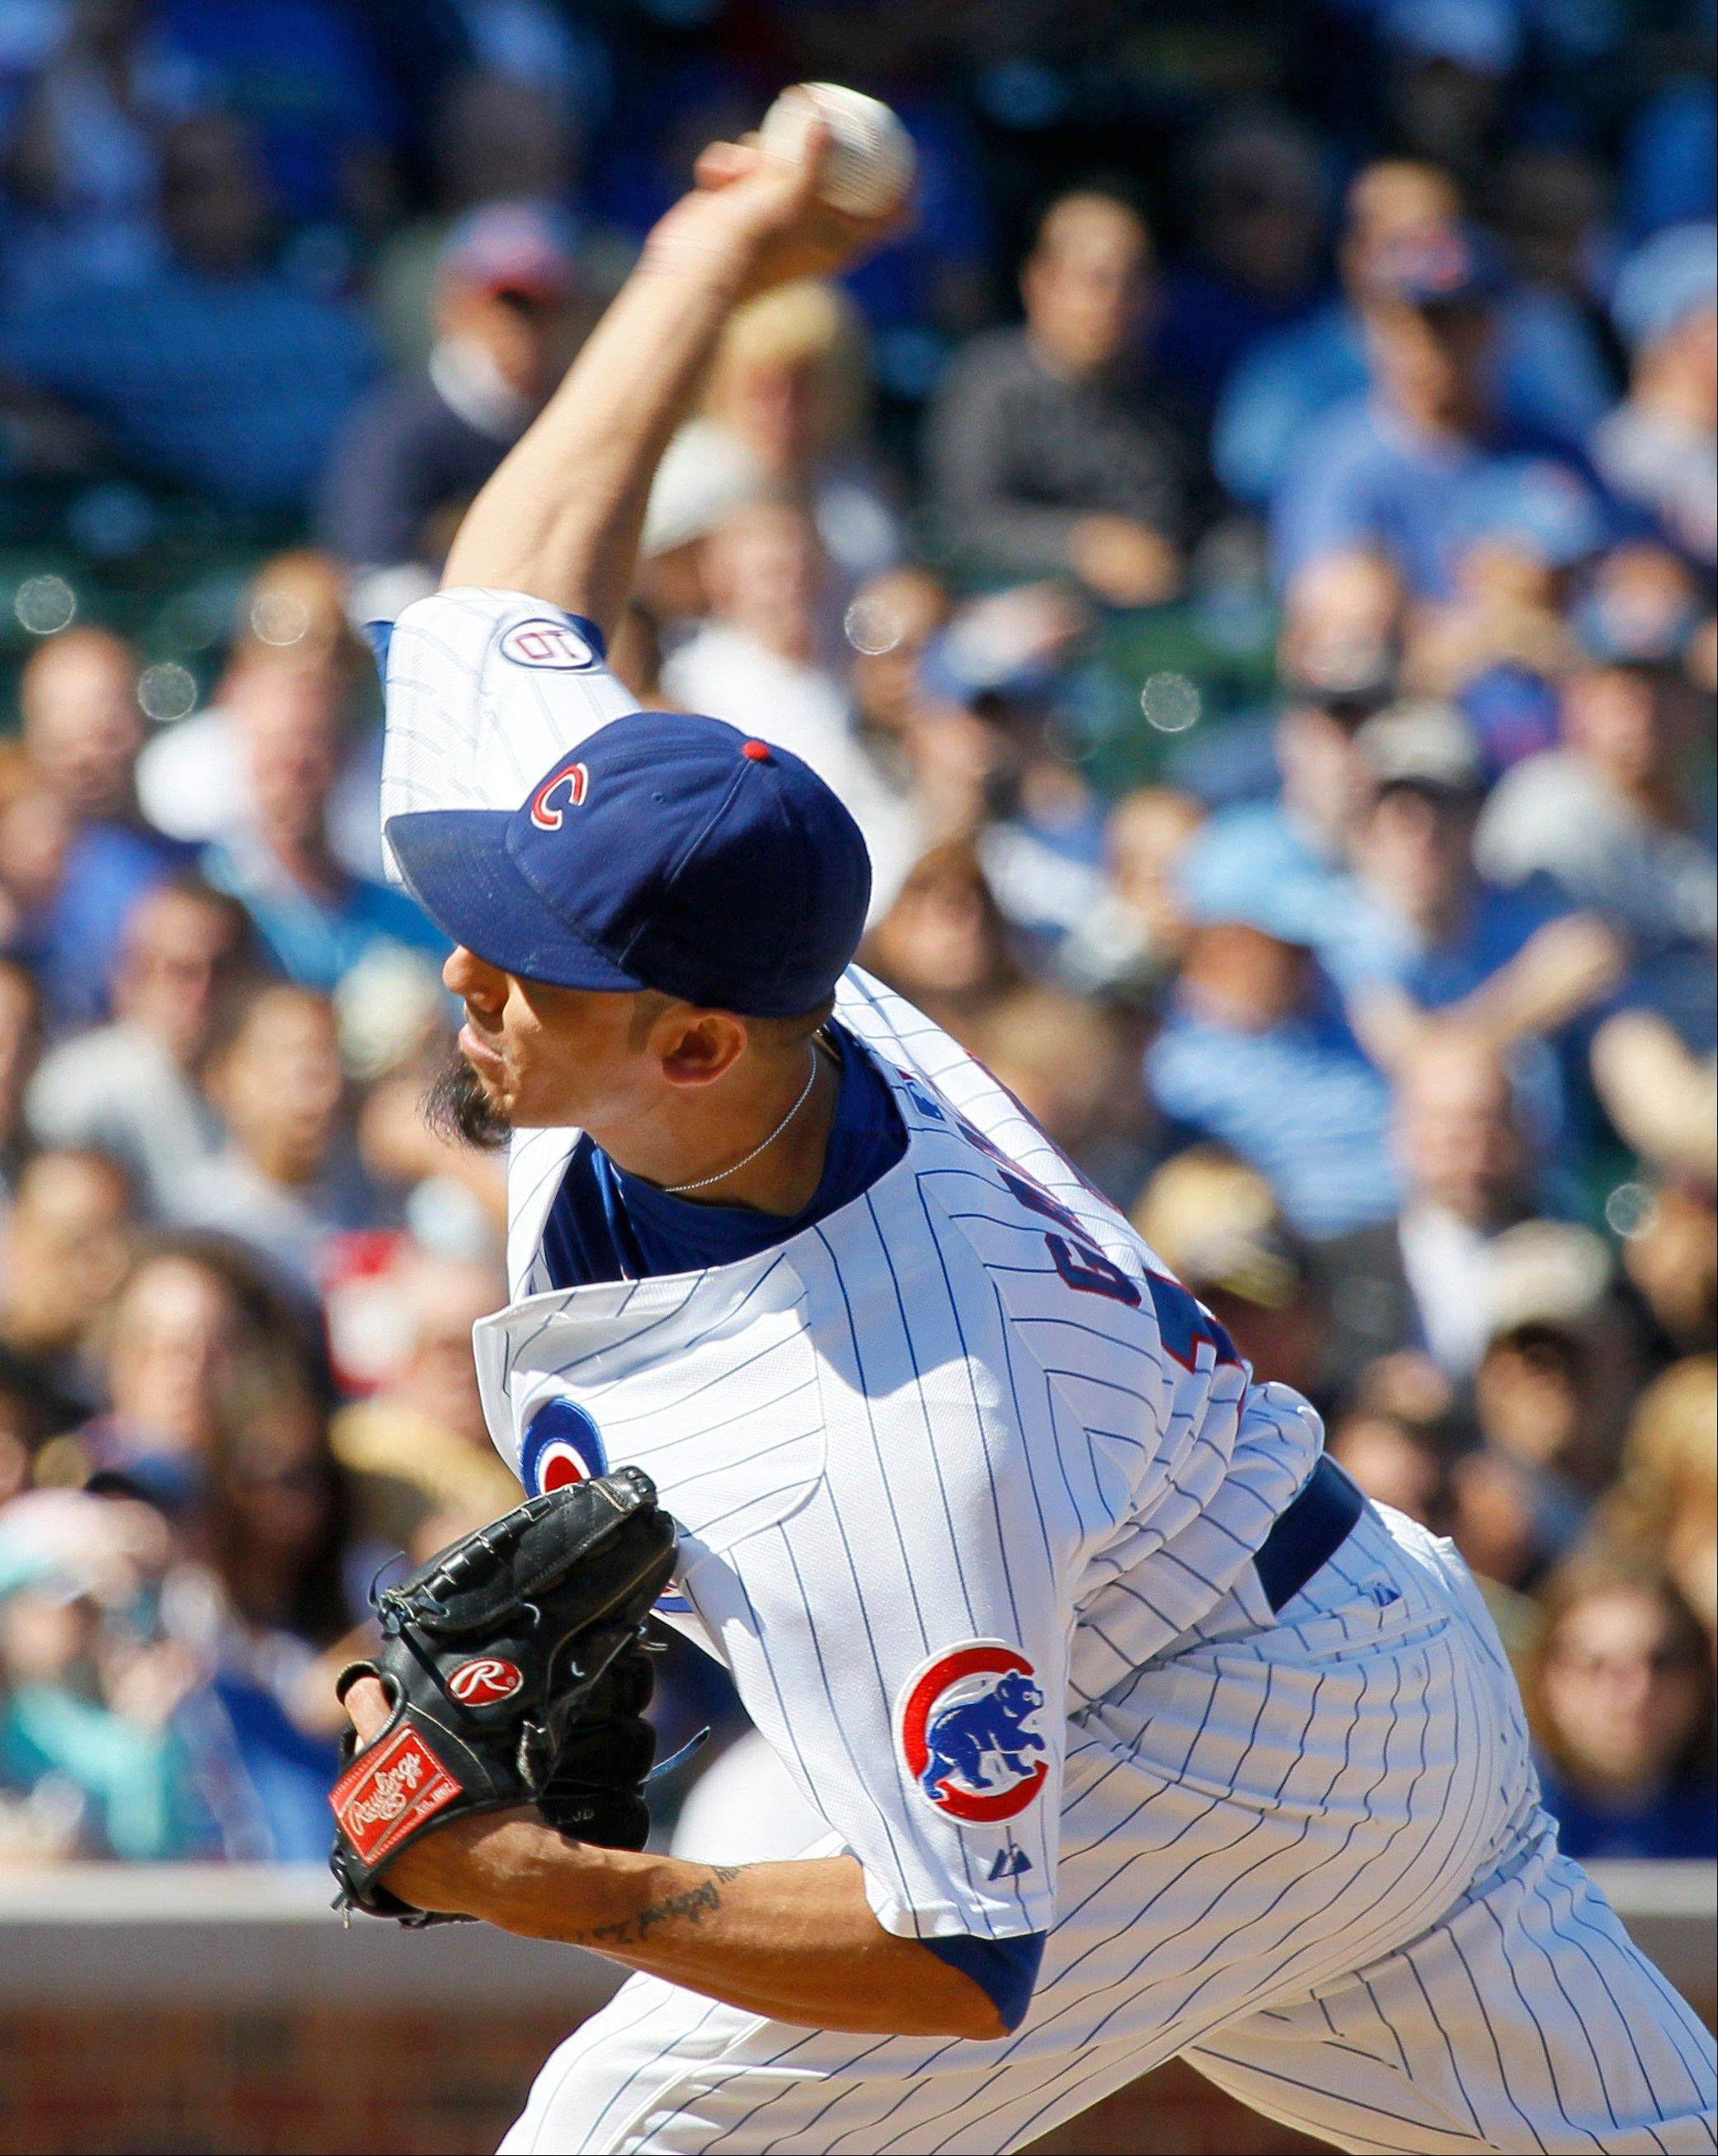 Garza pitches 6-hitter, Cubs stall Brewers